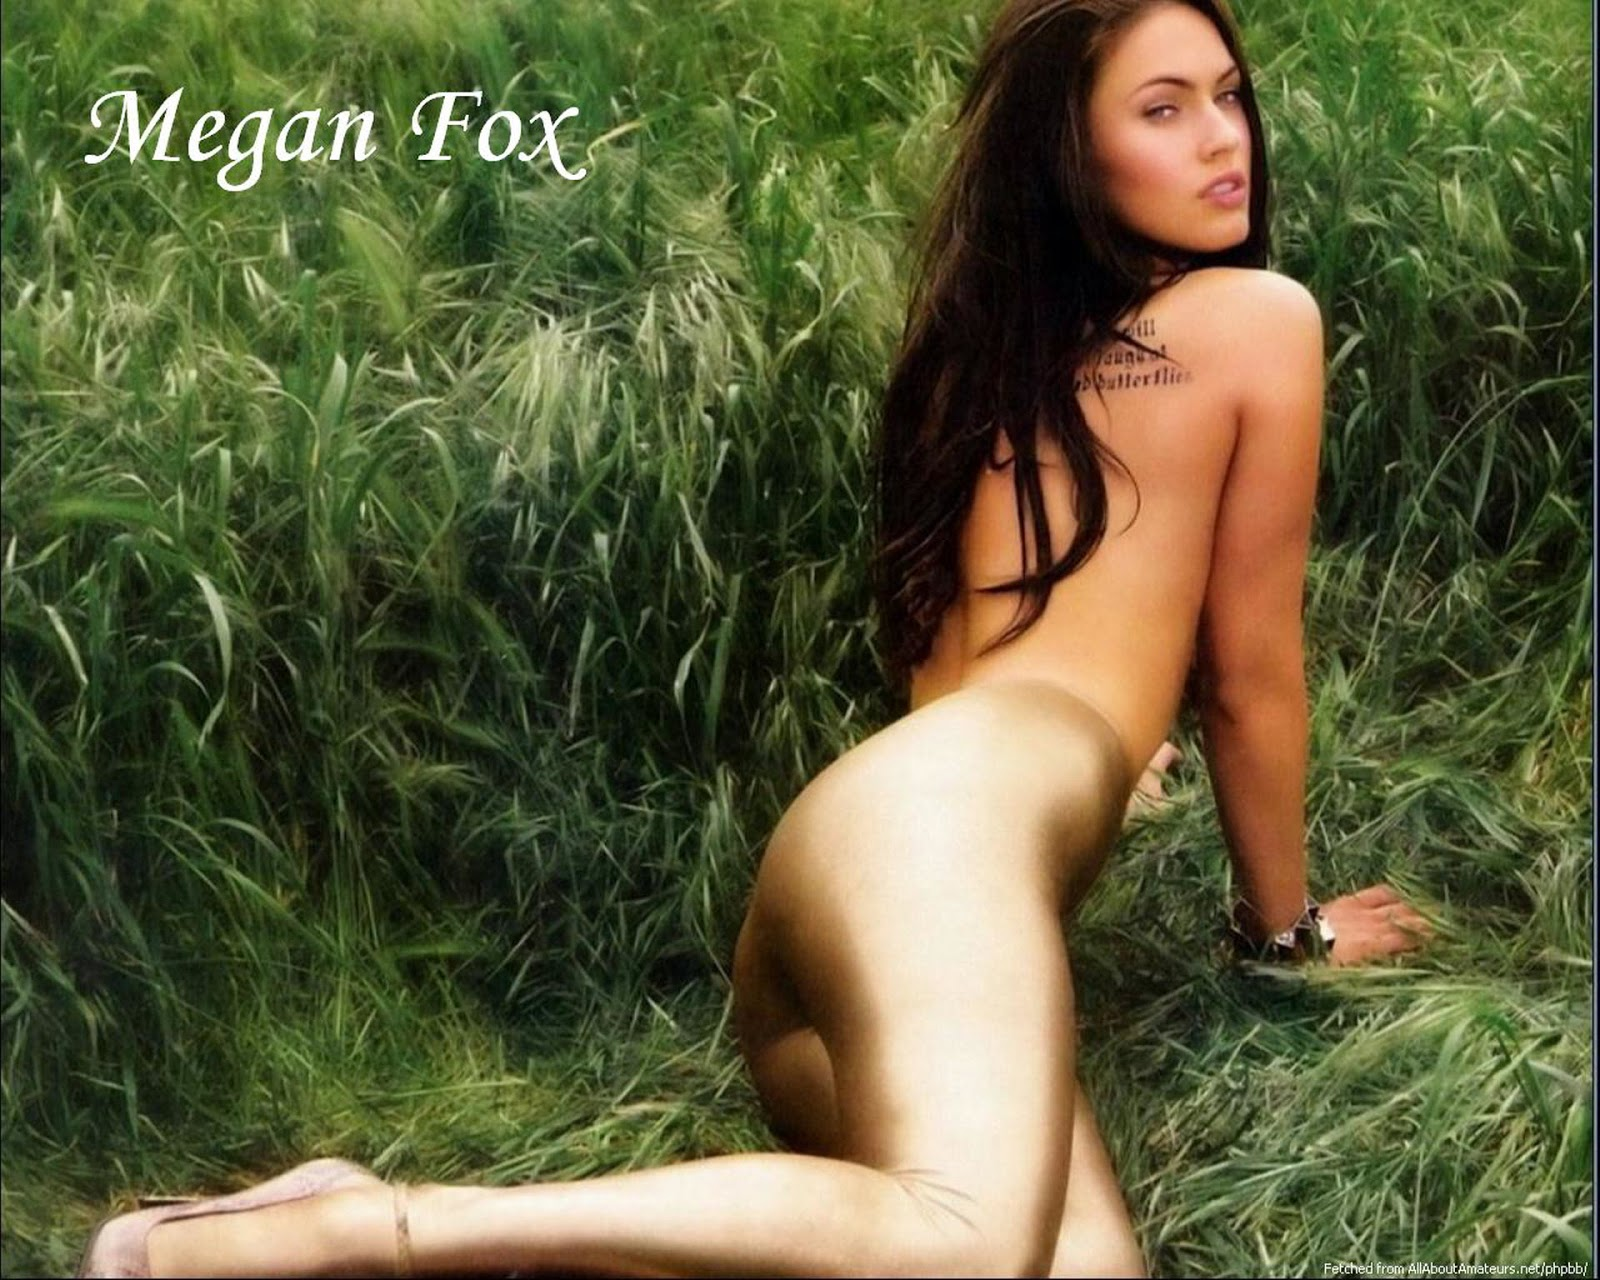 http://4.bp.blogspot.com/-ucMlde4FyeI/UNV_ueC_q5I/AAAAAAAApmM/Sq2VBH9eVc4/s1600/Megan+Fox+-+Hot+HD+Wallpapers+0003.jpg